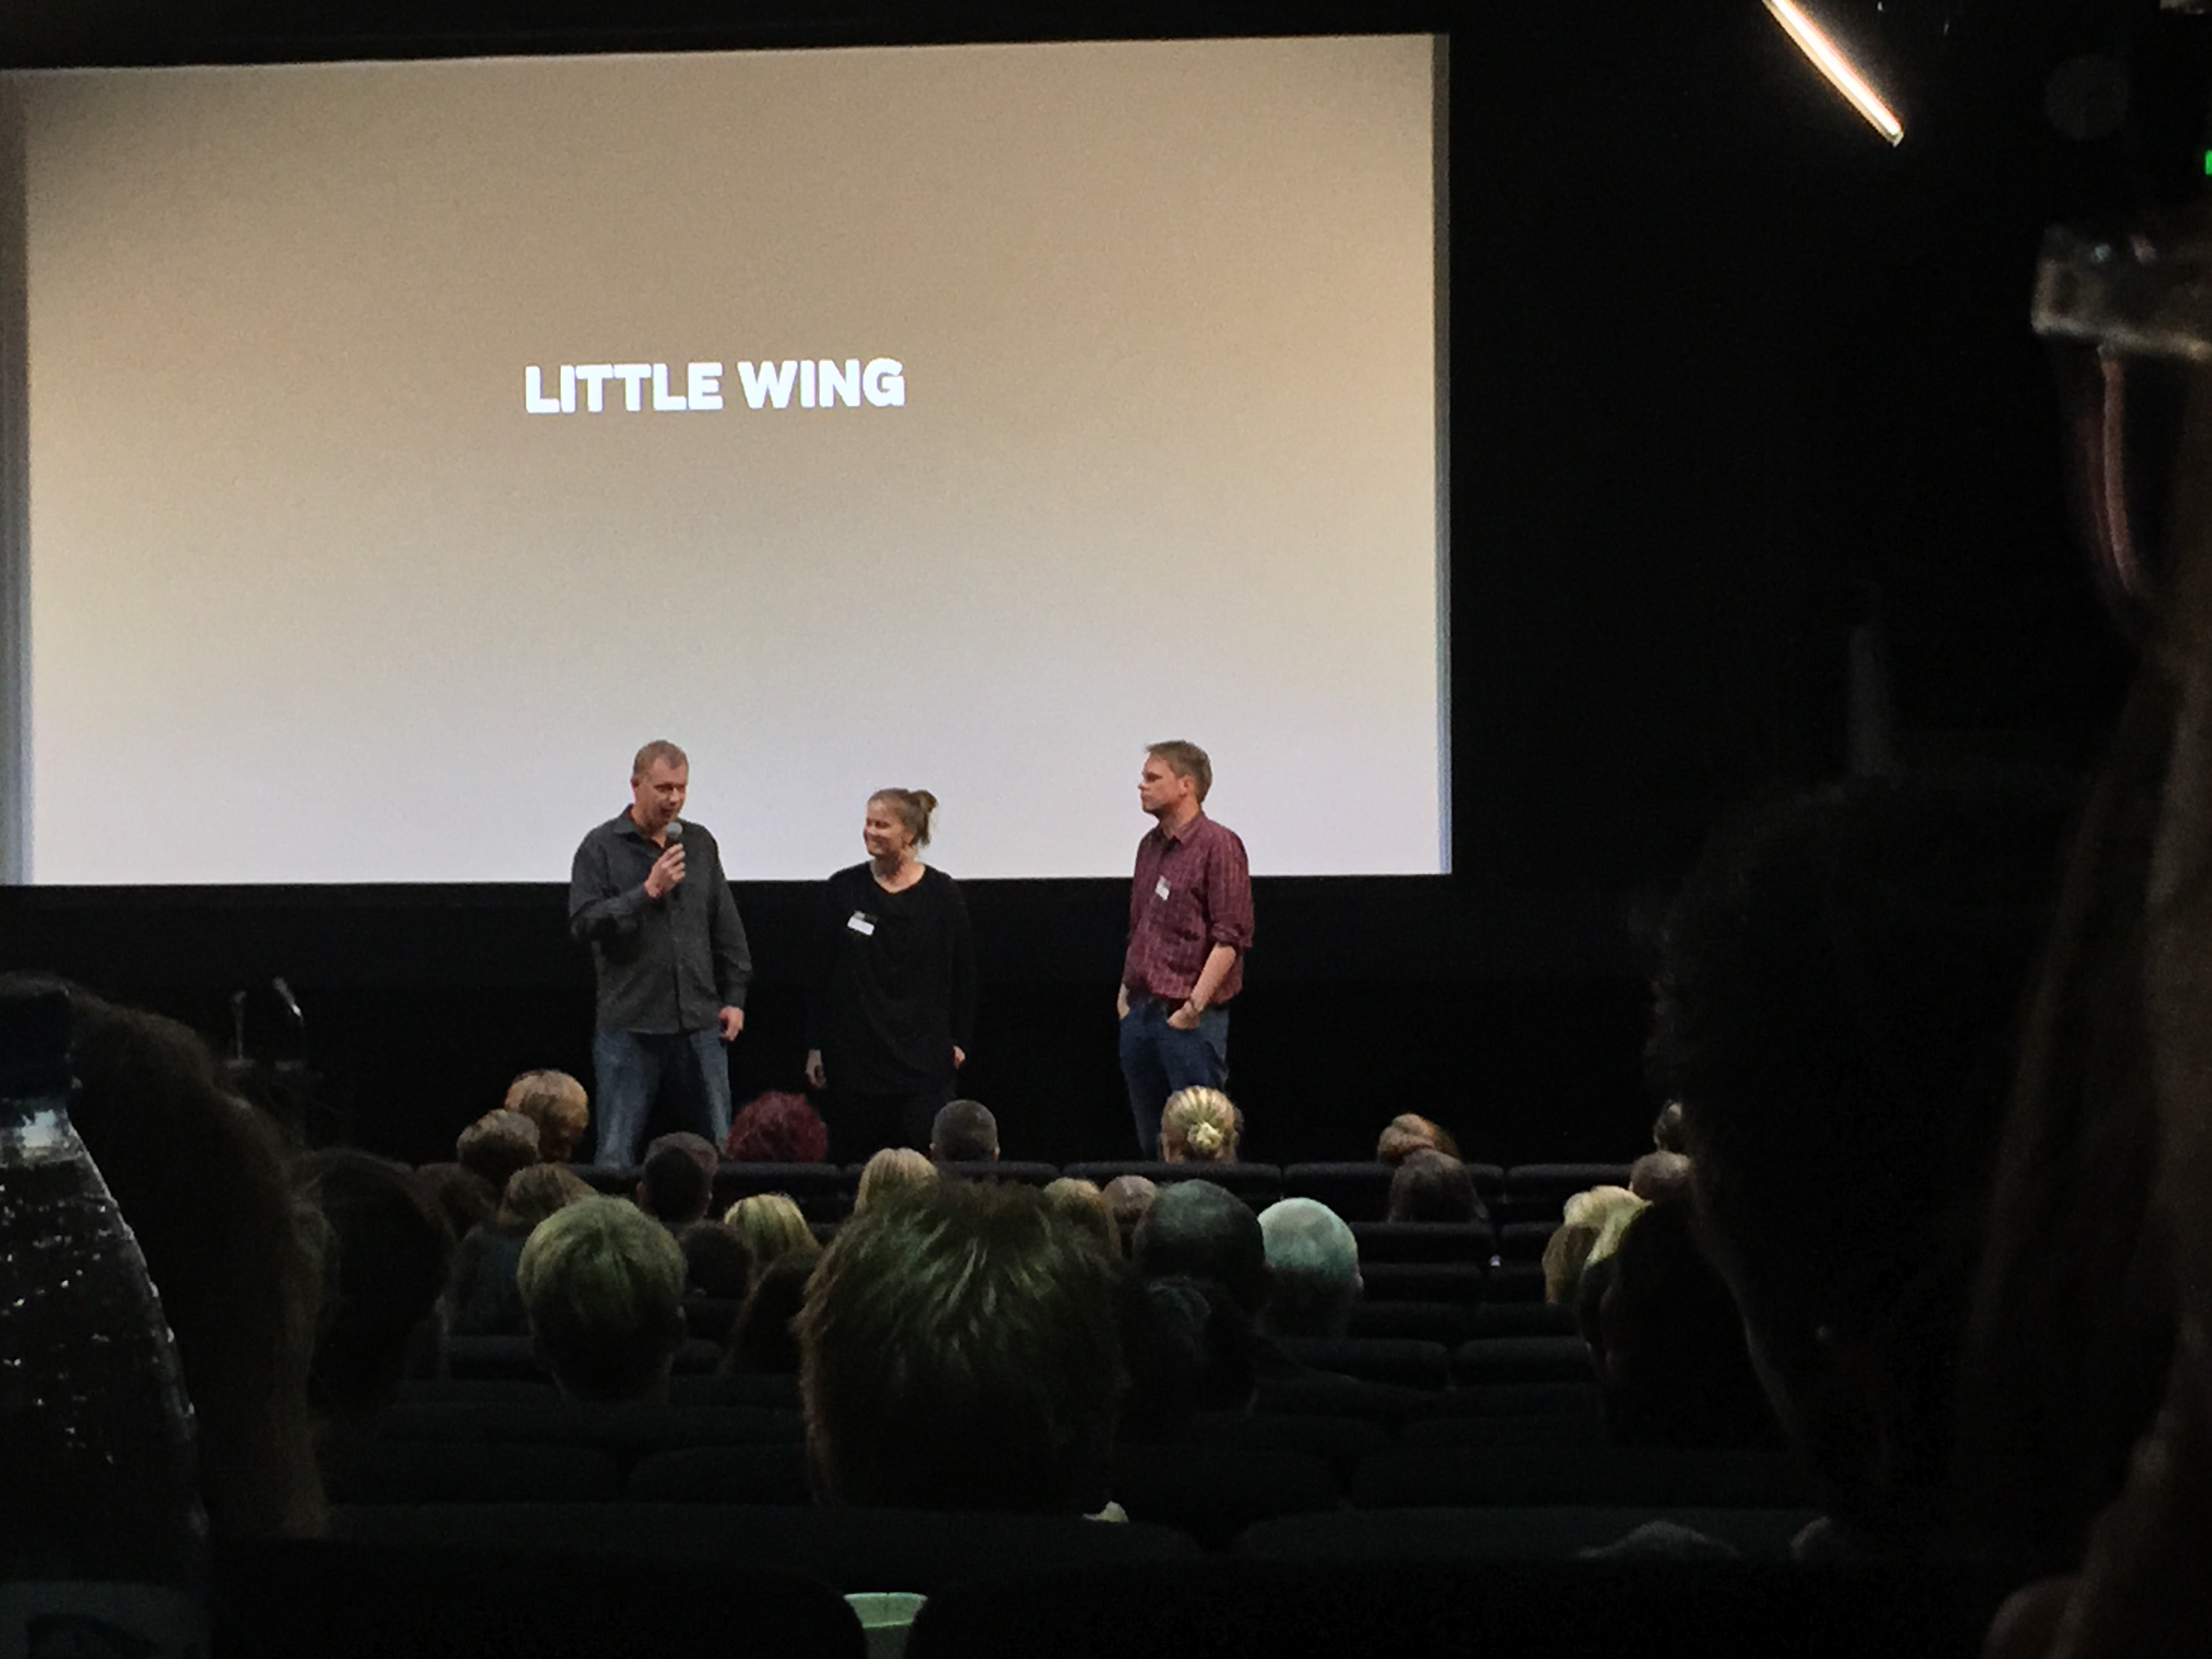 Two upcoming Making Movies film projects presented at the Finnish Film Affair industry event